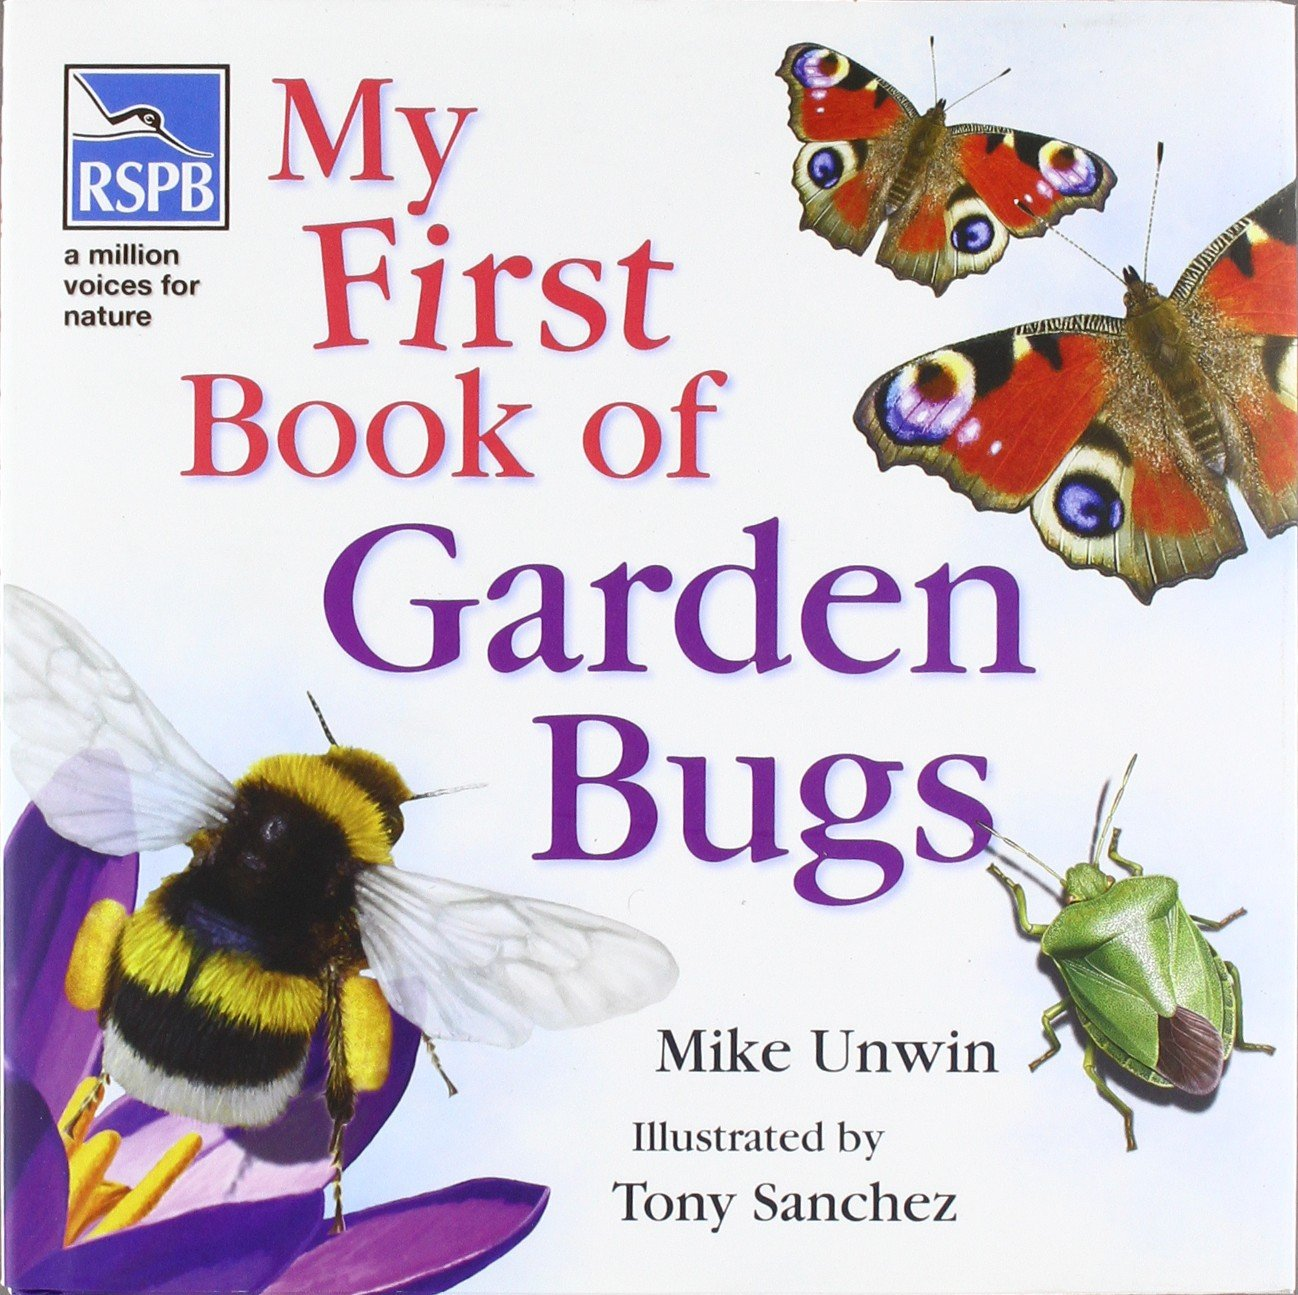 rspb my first book of garden bugs amazon co uk mike unwin